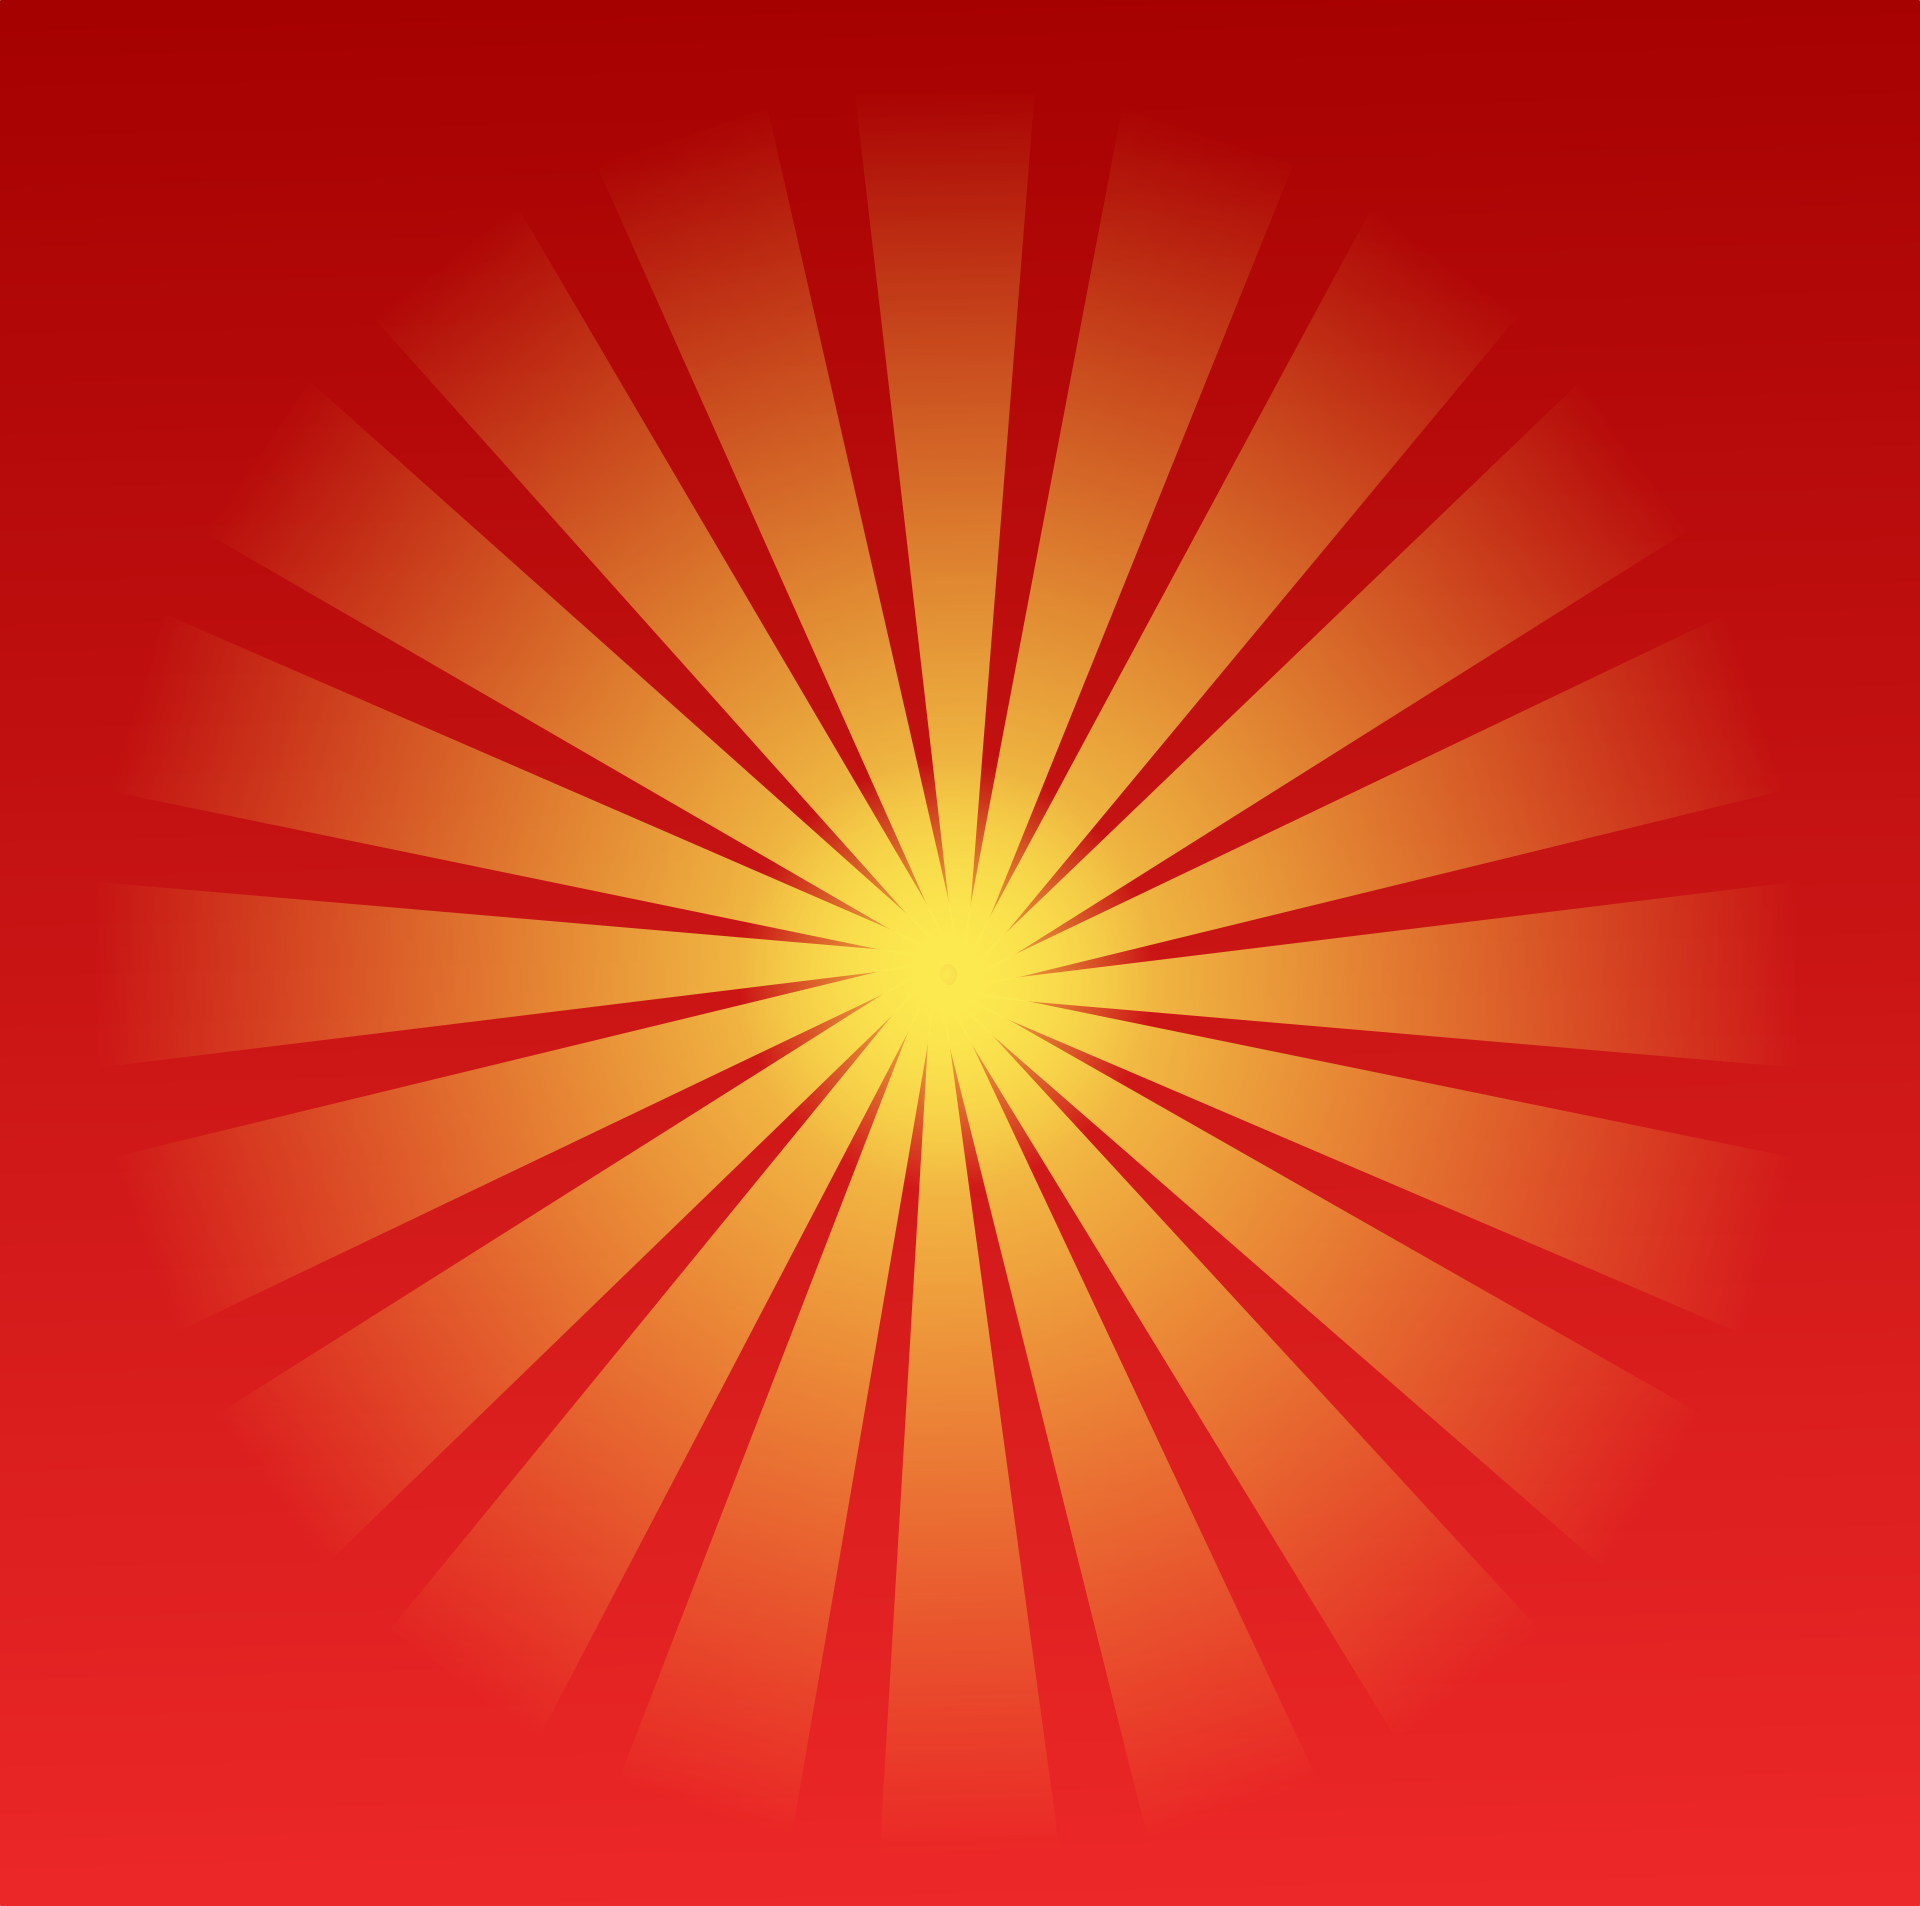 A yellow sun on a red background.